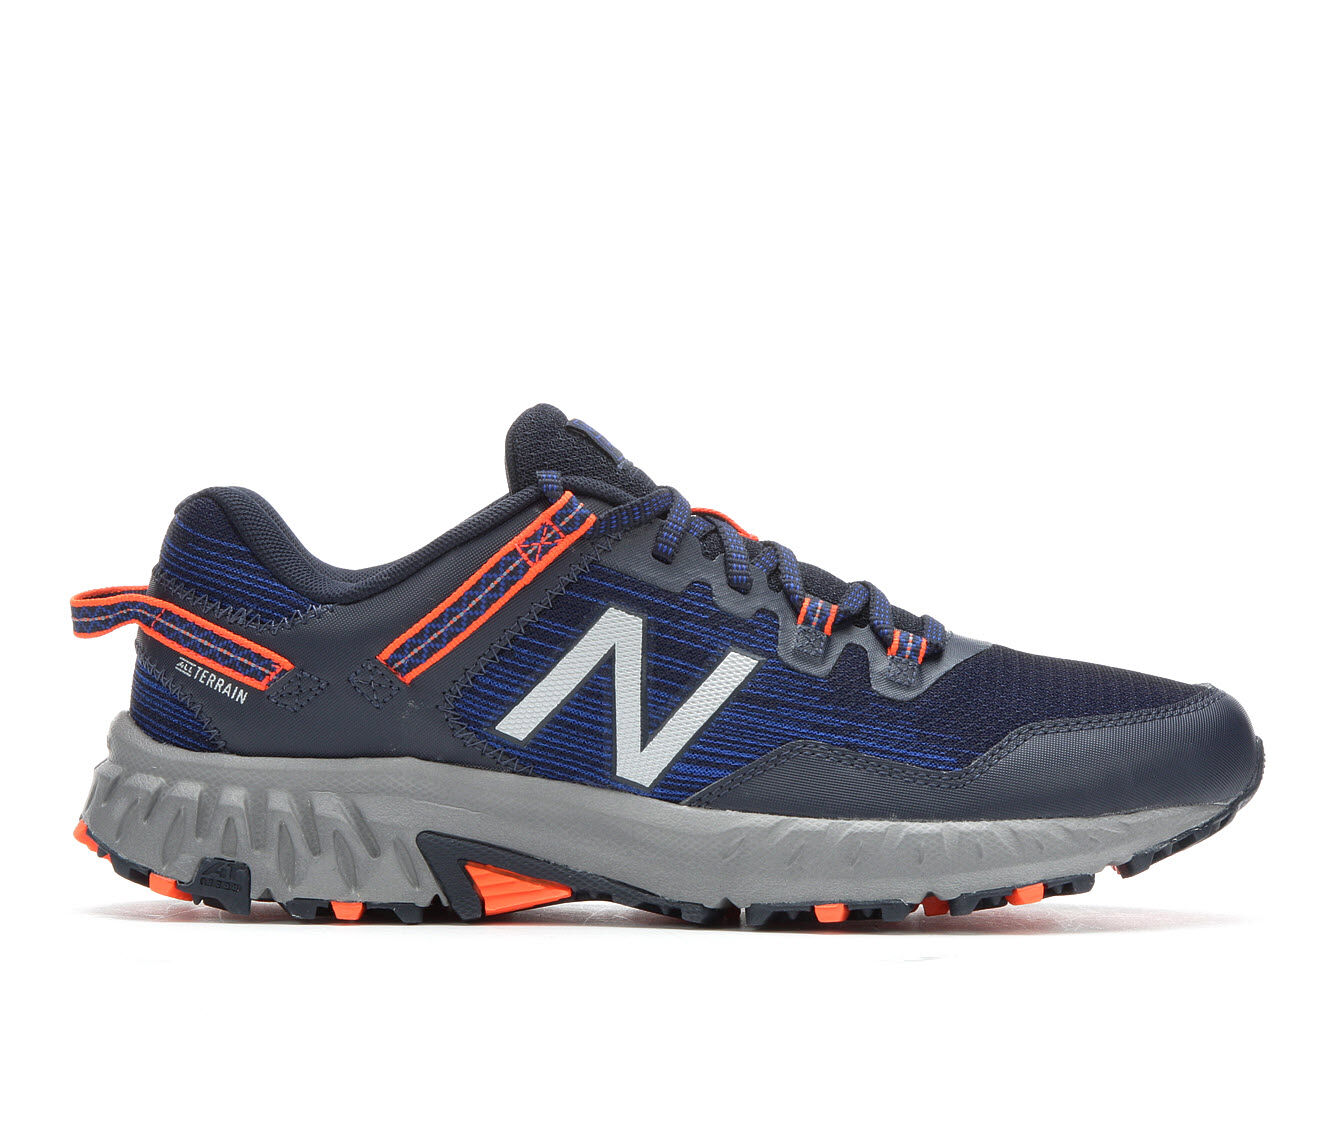 new balance trial running